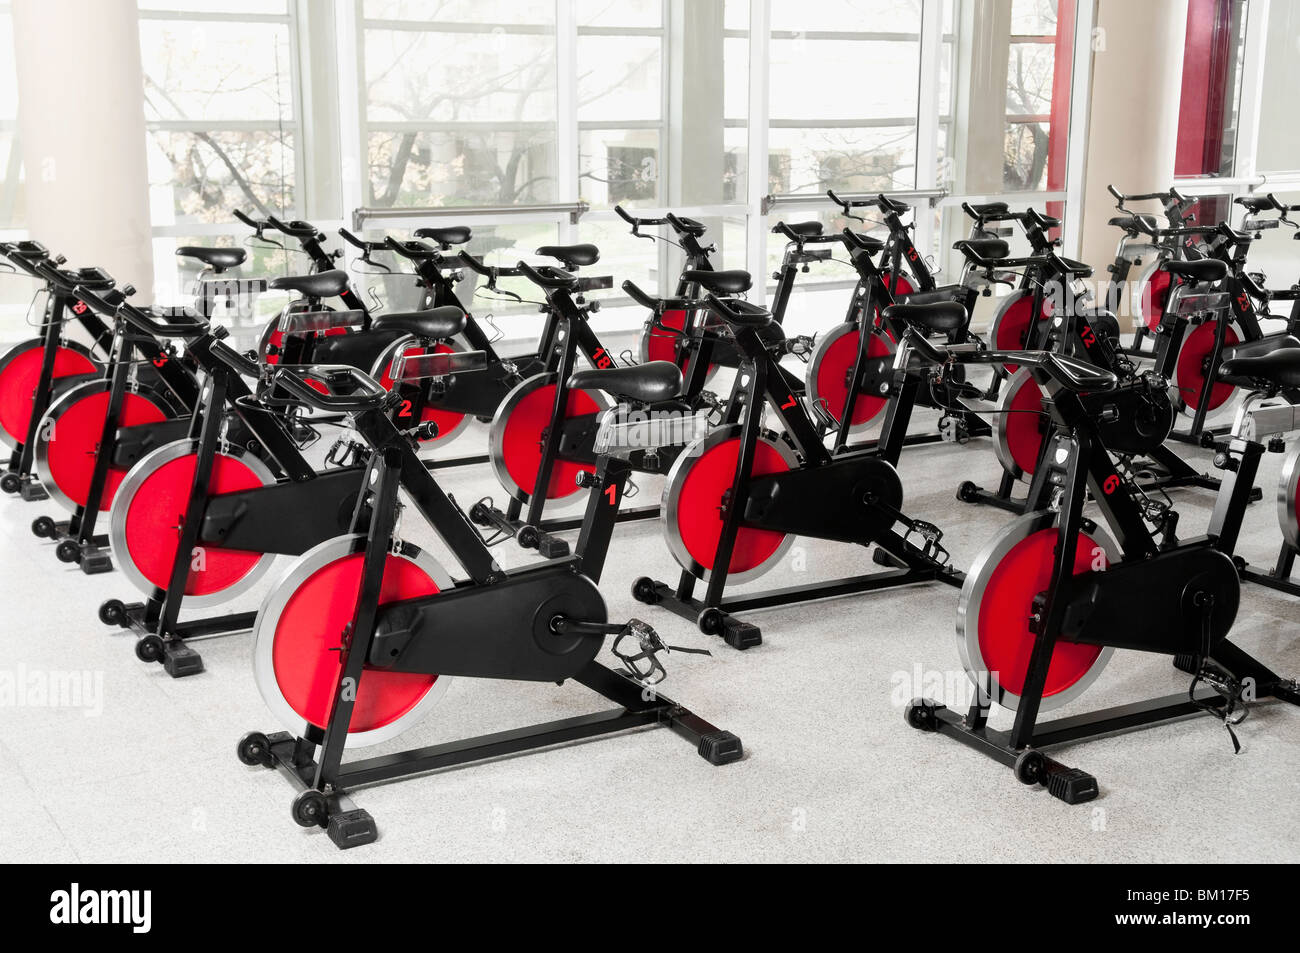 Exercise bikes in a gym - Stock Image